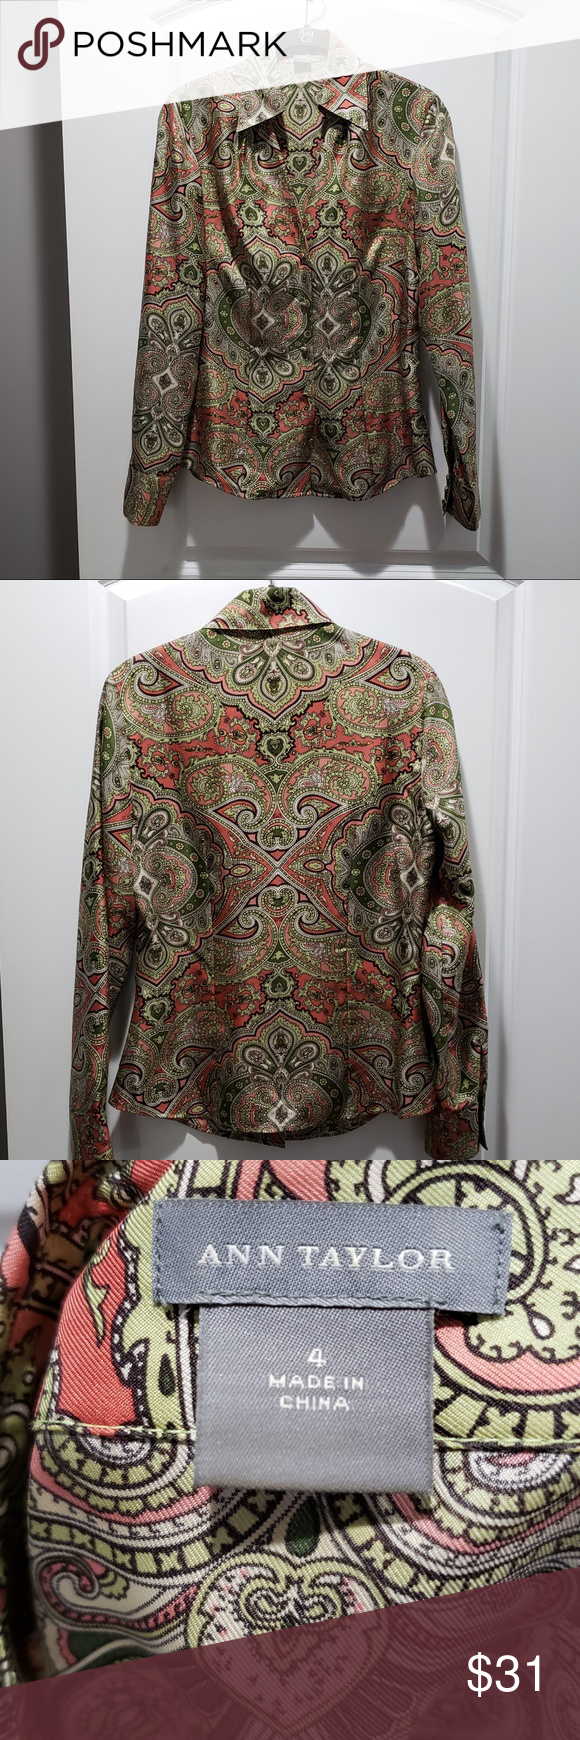 94e5e82a5ac79c Ann Taylor Olive Green Paisley Silk Blouse Size 4 NWOT: Pretty, olive green/